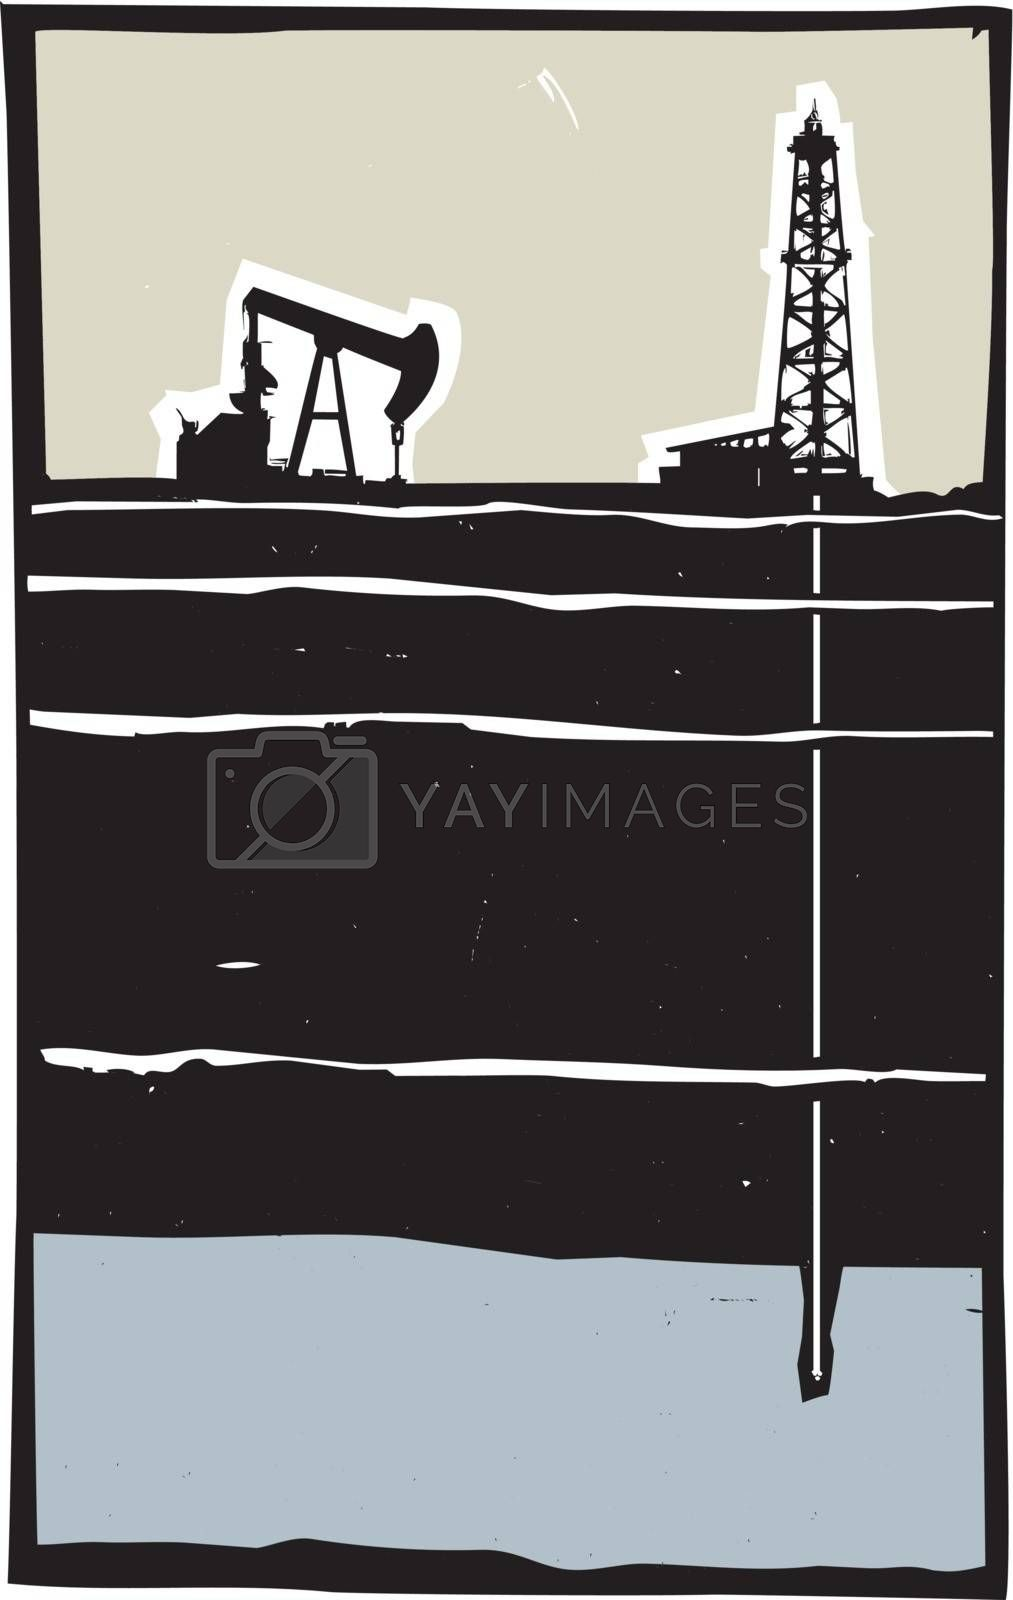 Drill and Pump jack drilling in the ground down to an aquifer.